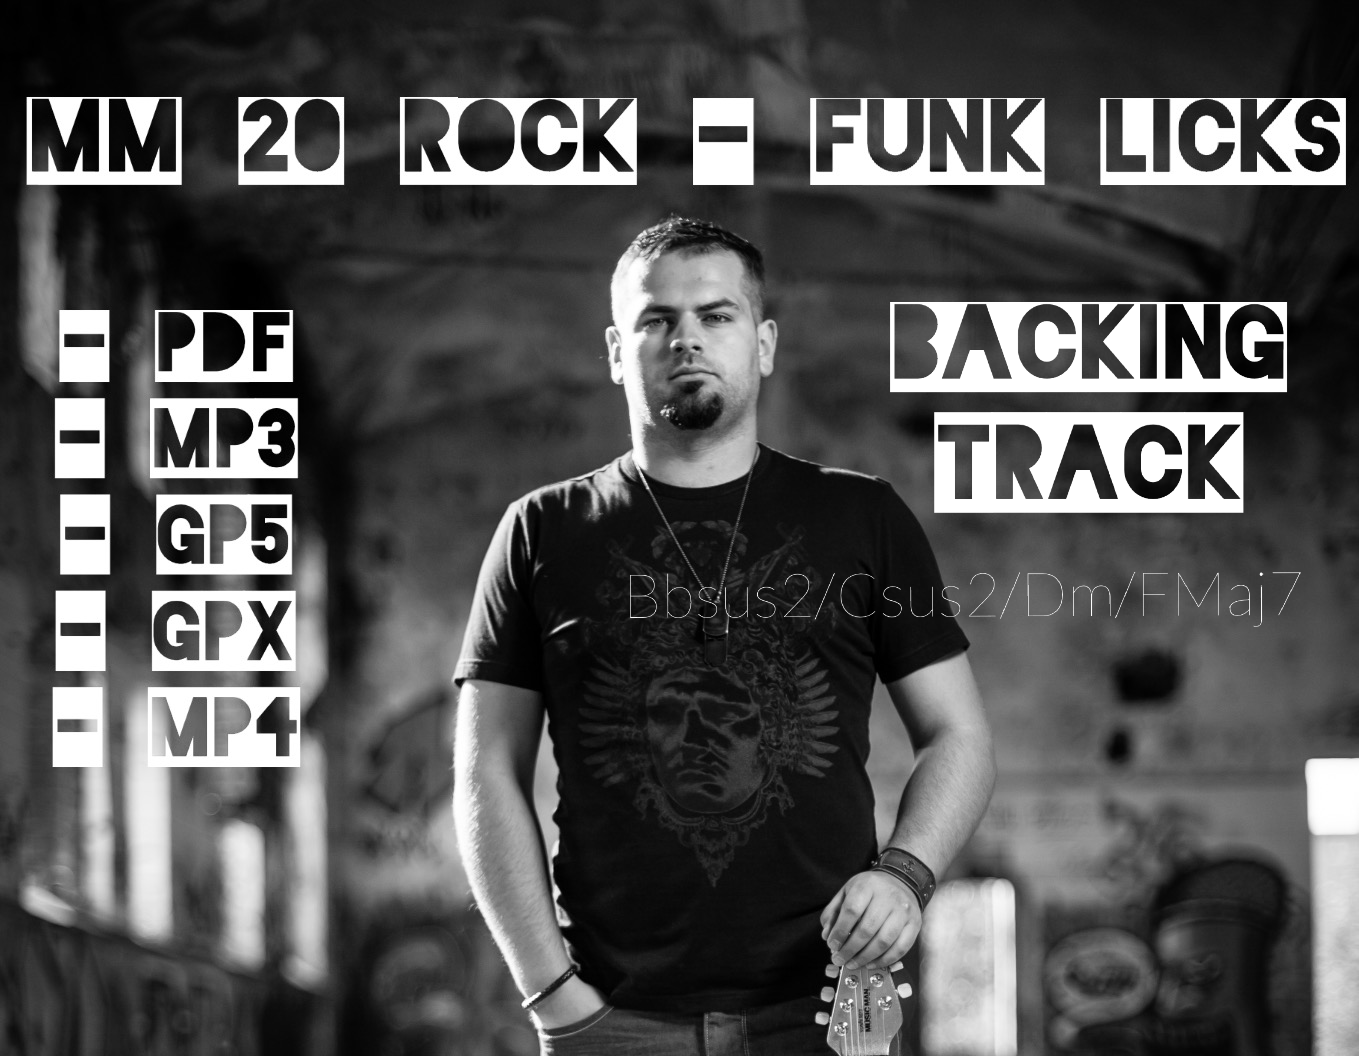 MM 20 Rock-Funk Licks, Full Backing Track, D minor, 120bpm